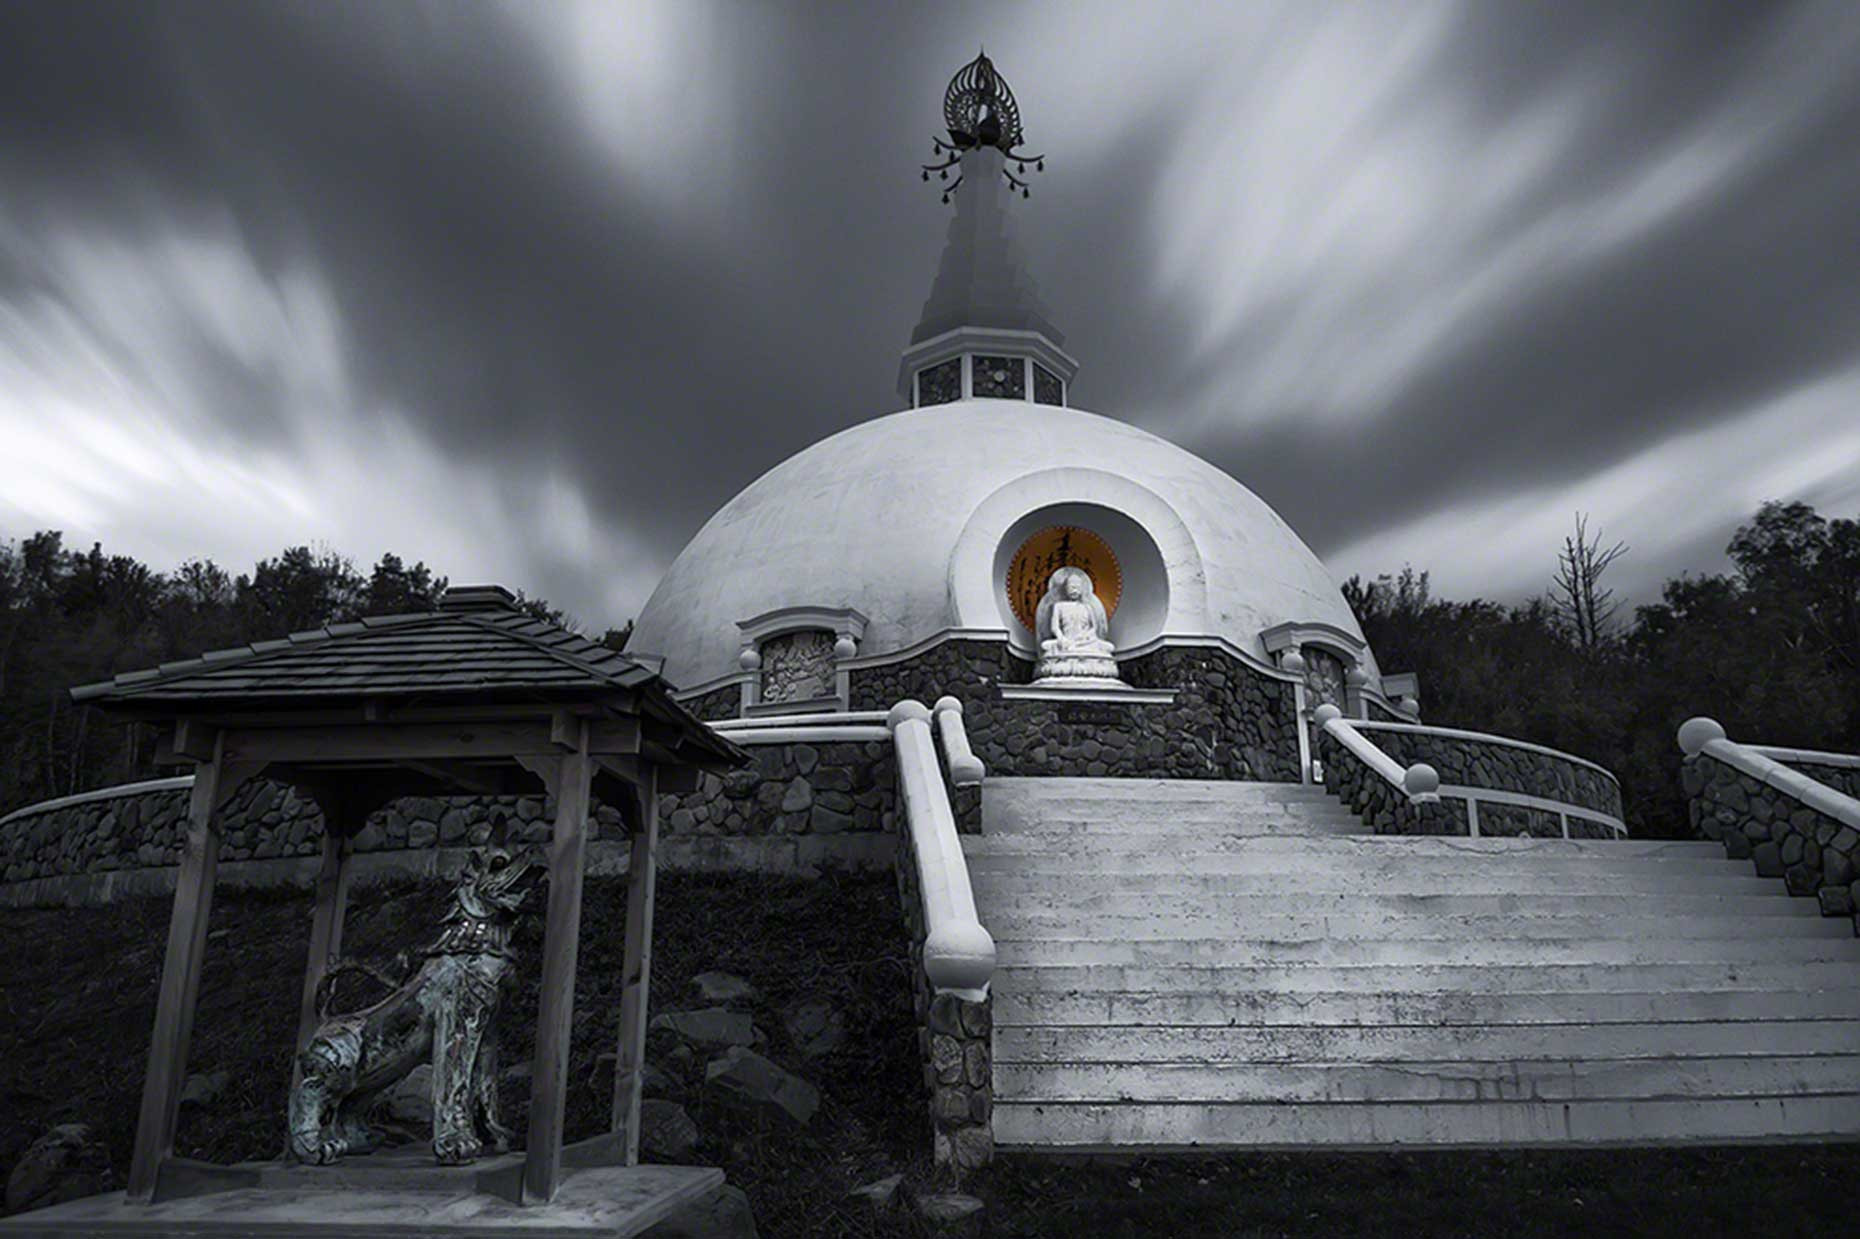 FritzImages | Travel and Outdoor Digital Images | image name = FIFP 20141008 0147 NY Grafton Pagoda iop